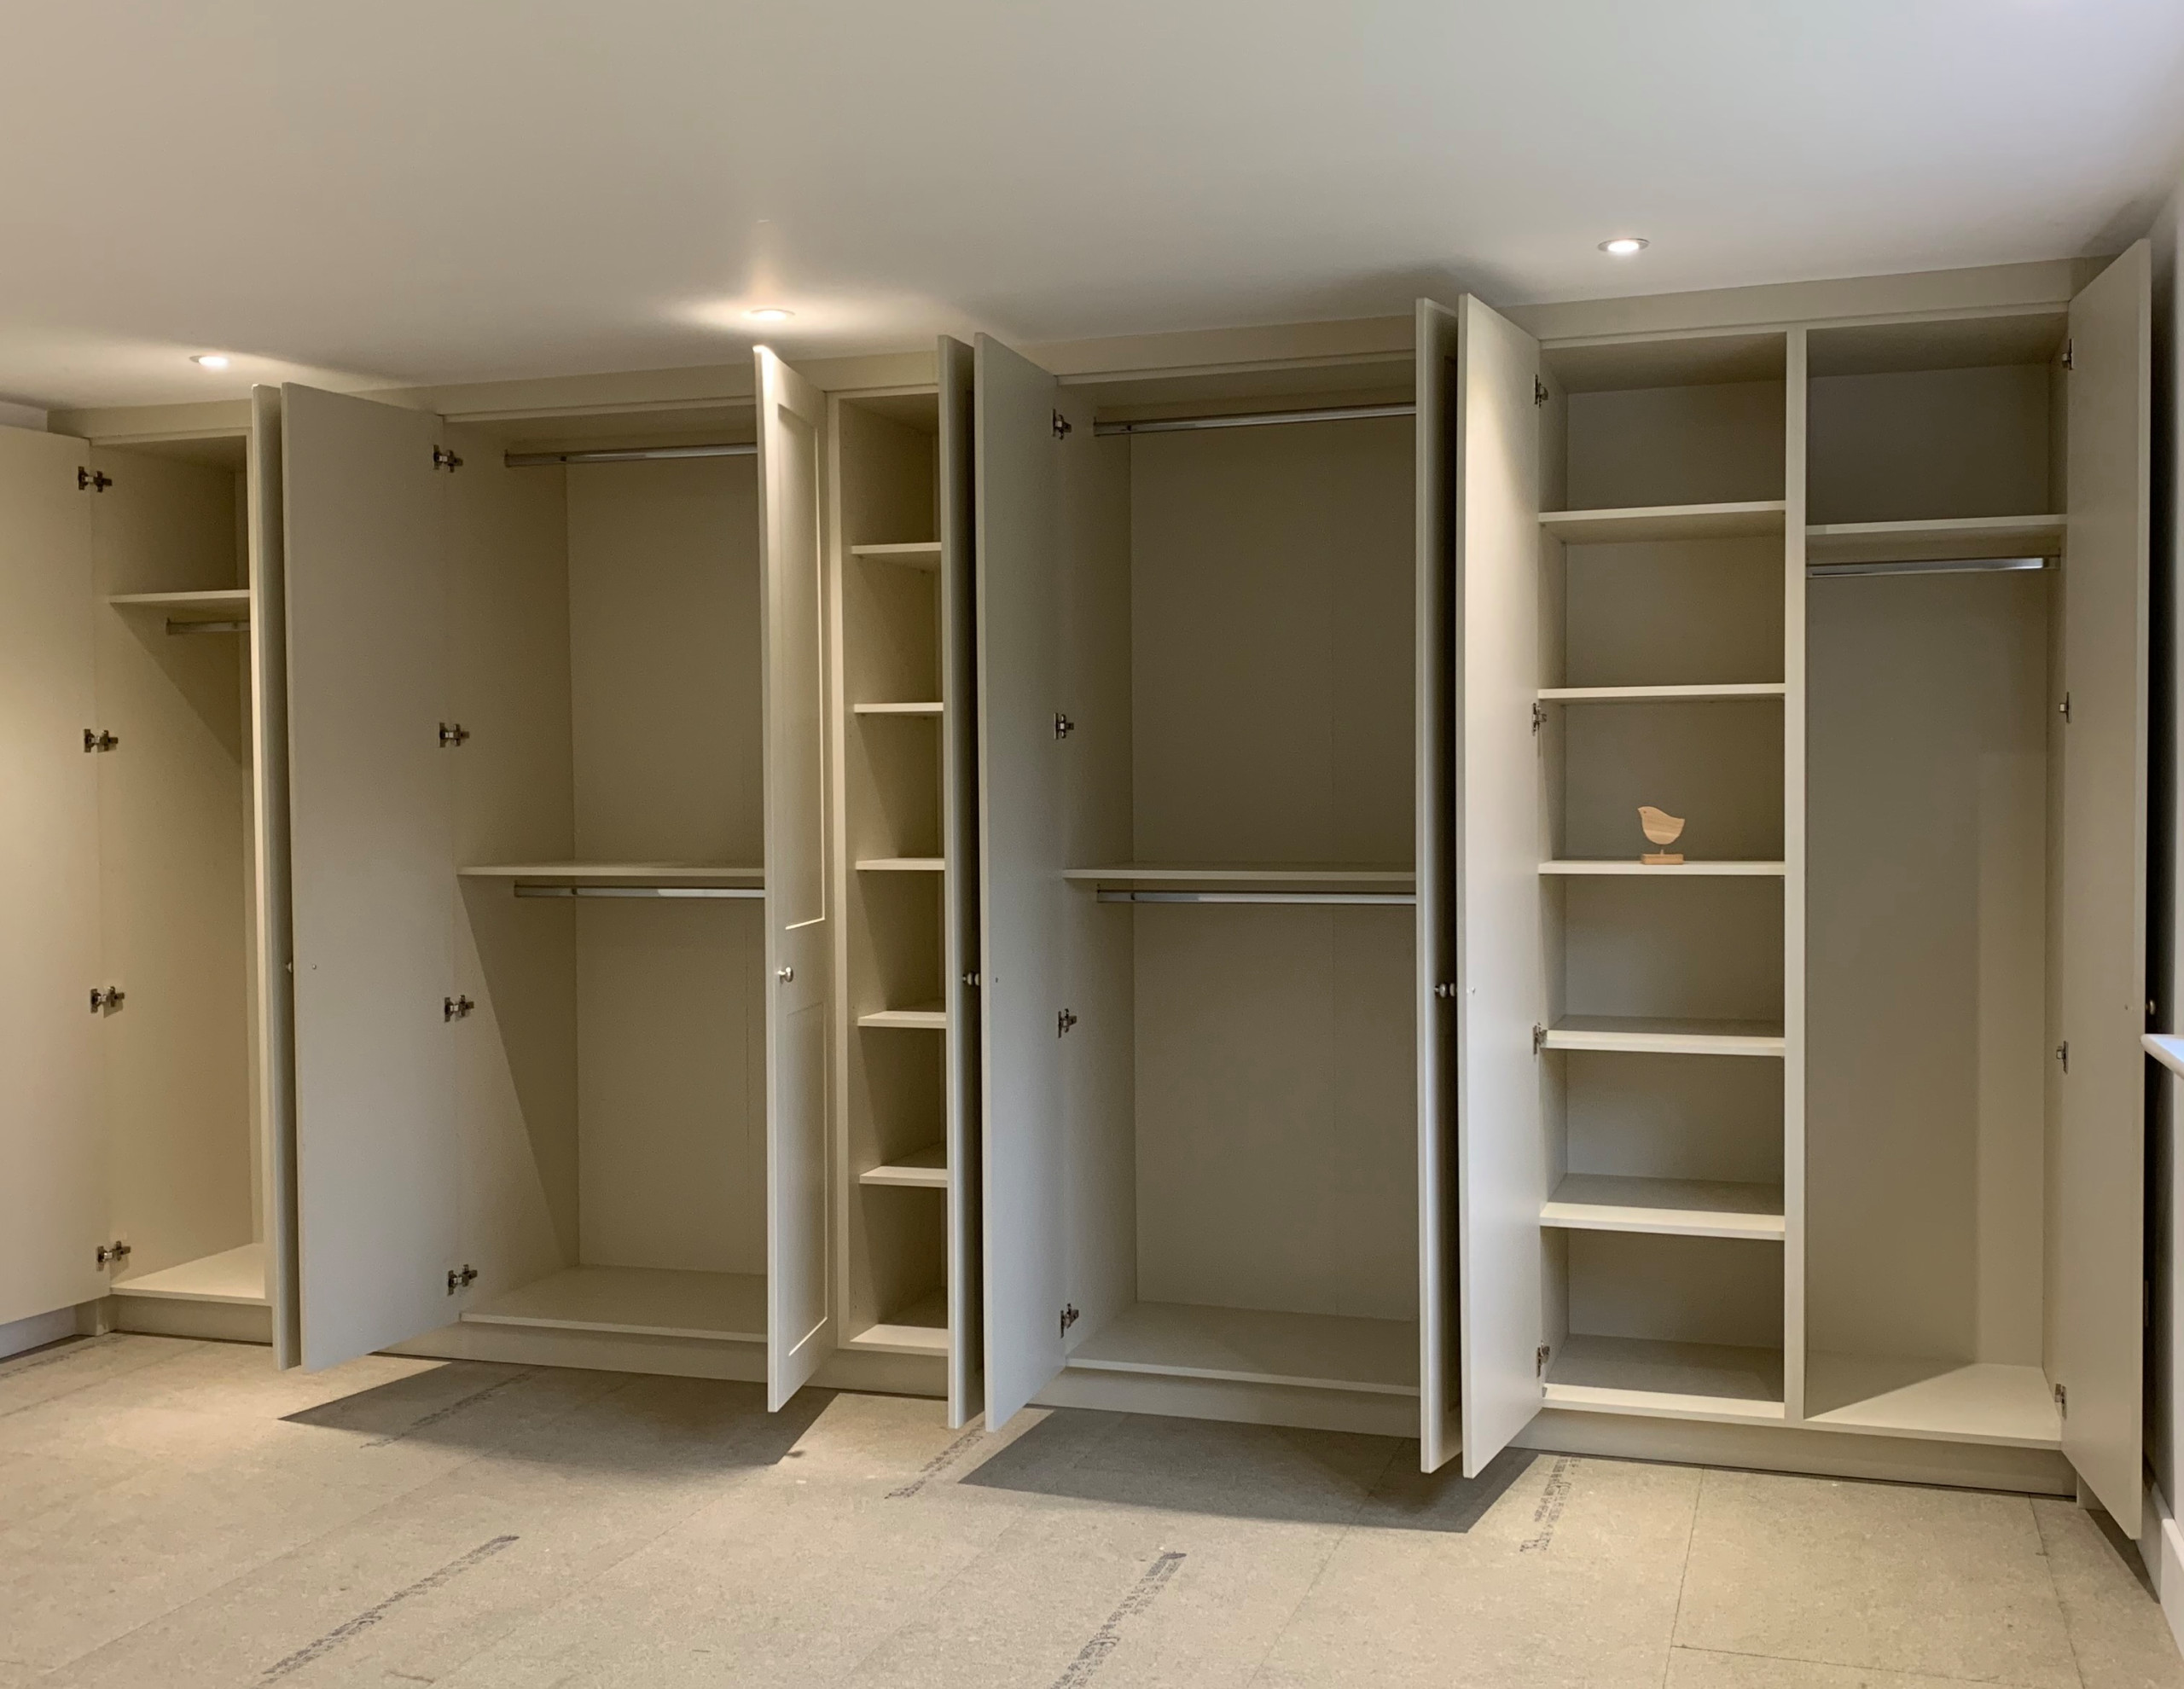 Bespoke Fitted Wardrobes in 'Mussell' Colour